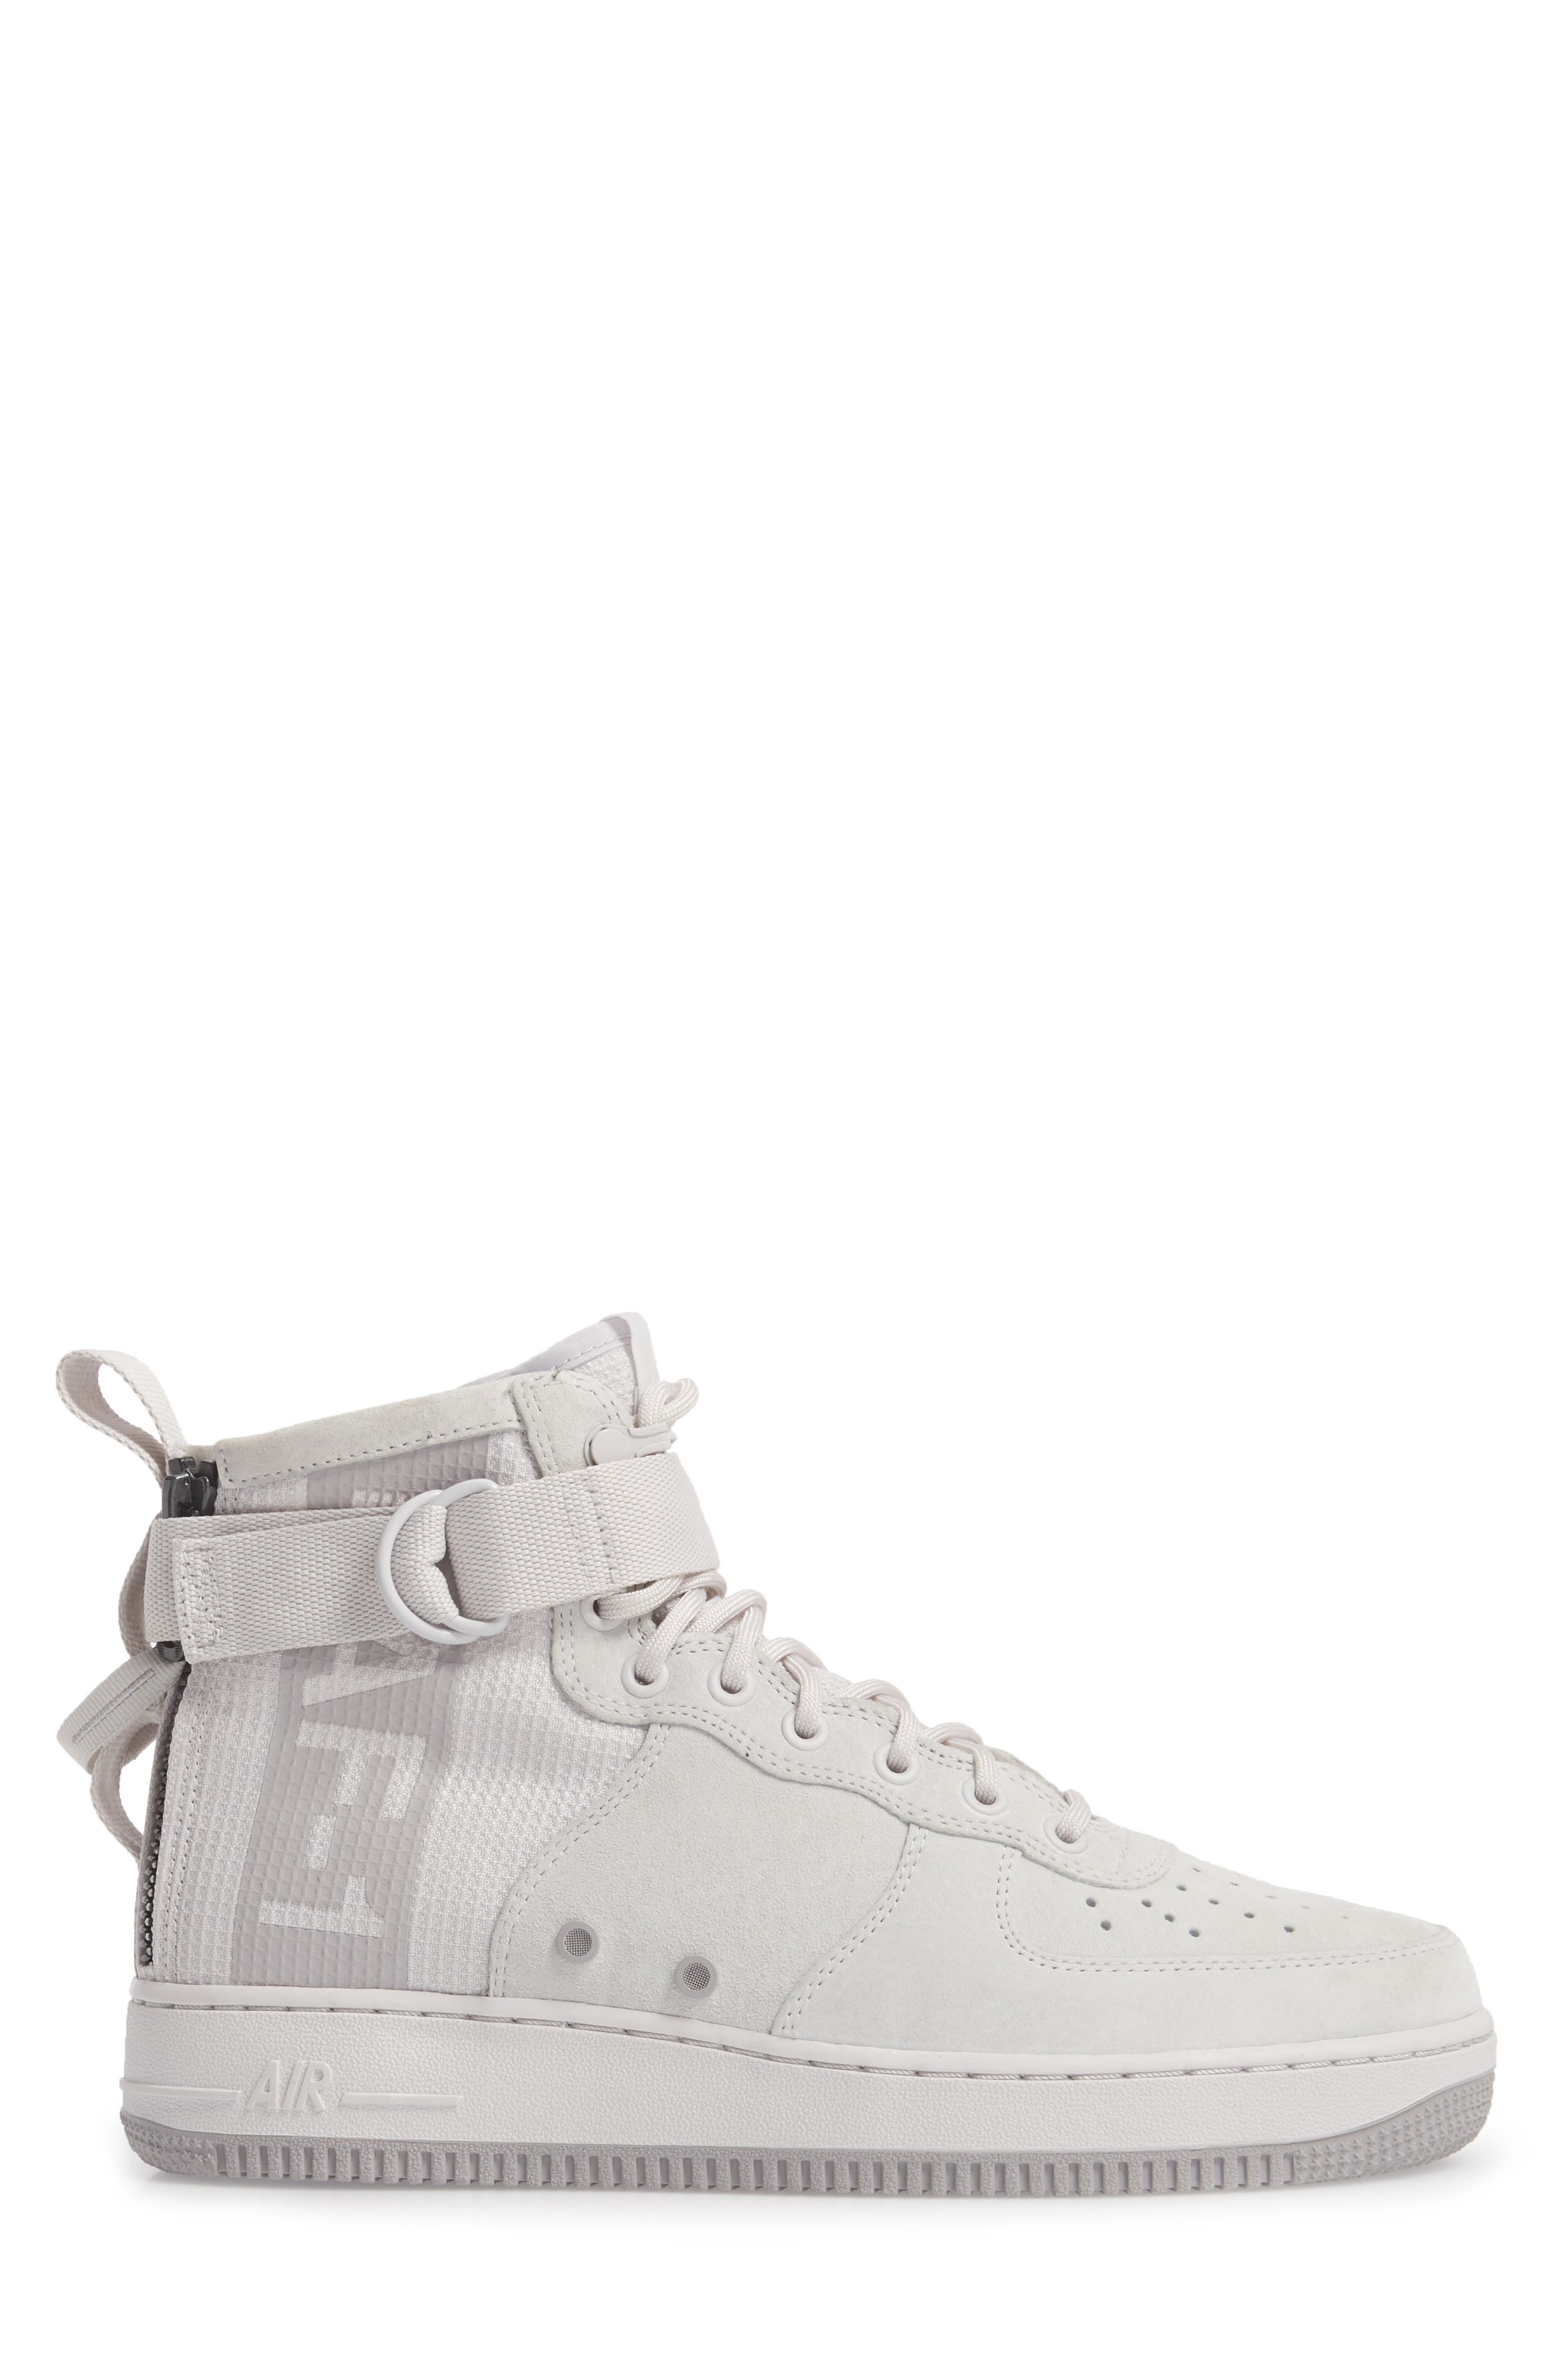 SF Air Force 1 Mid Suede Sneaker,                             Alternate thumbnail 3, color,                             021